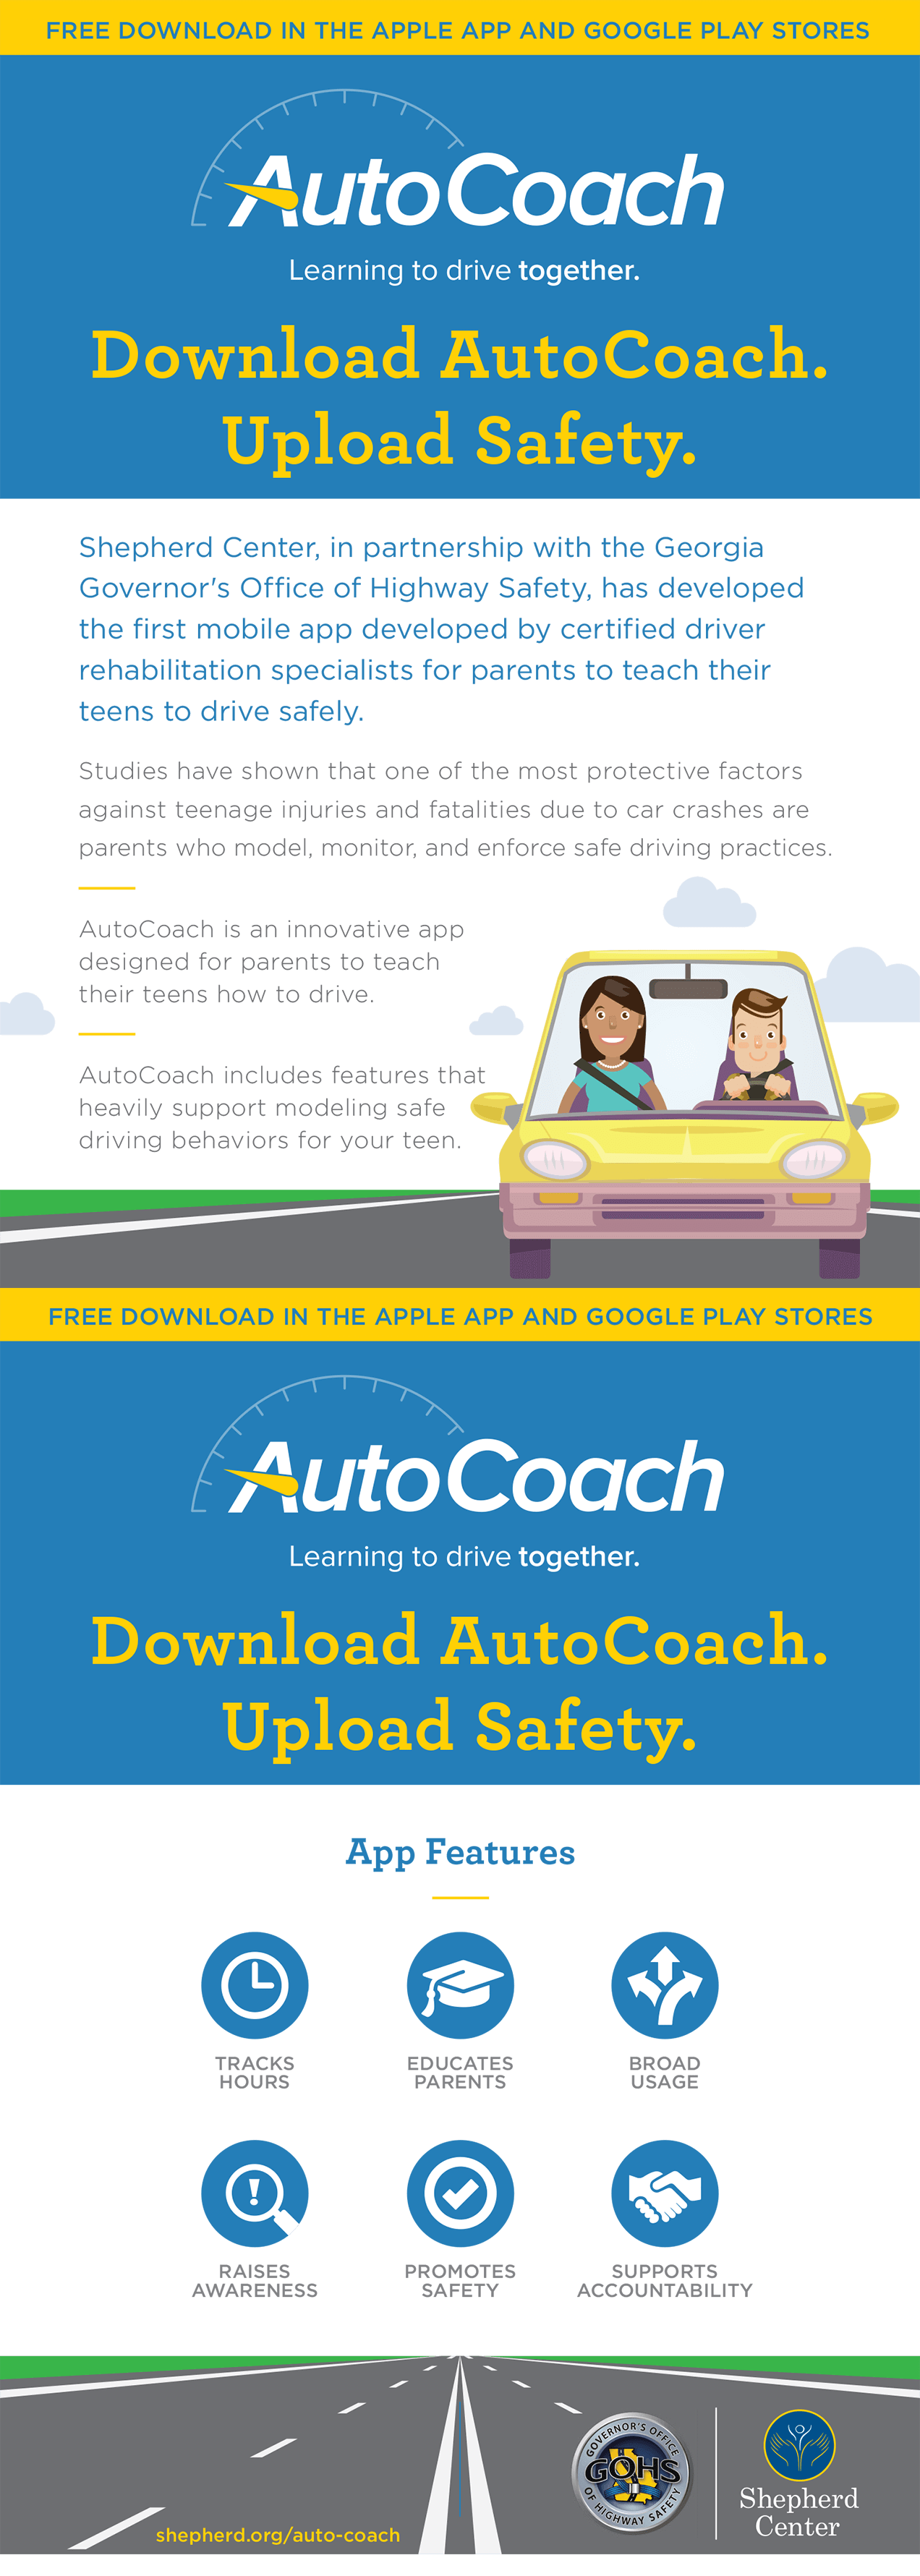 Autocoach Mobile App For Teen Driving Safety Ed Voyles Automotive